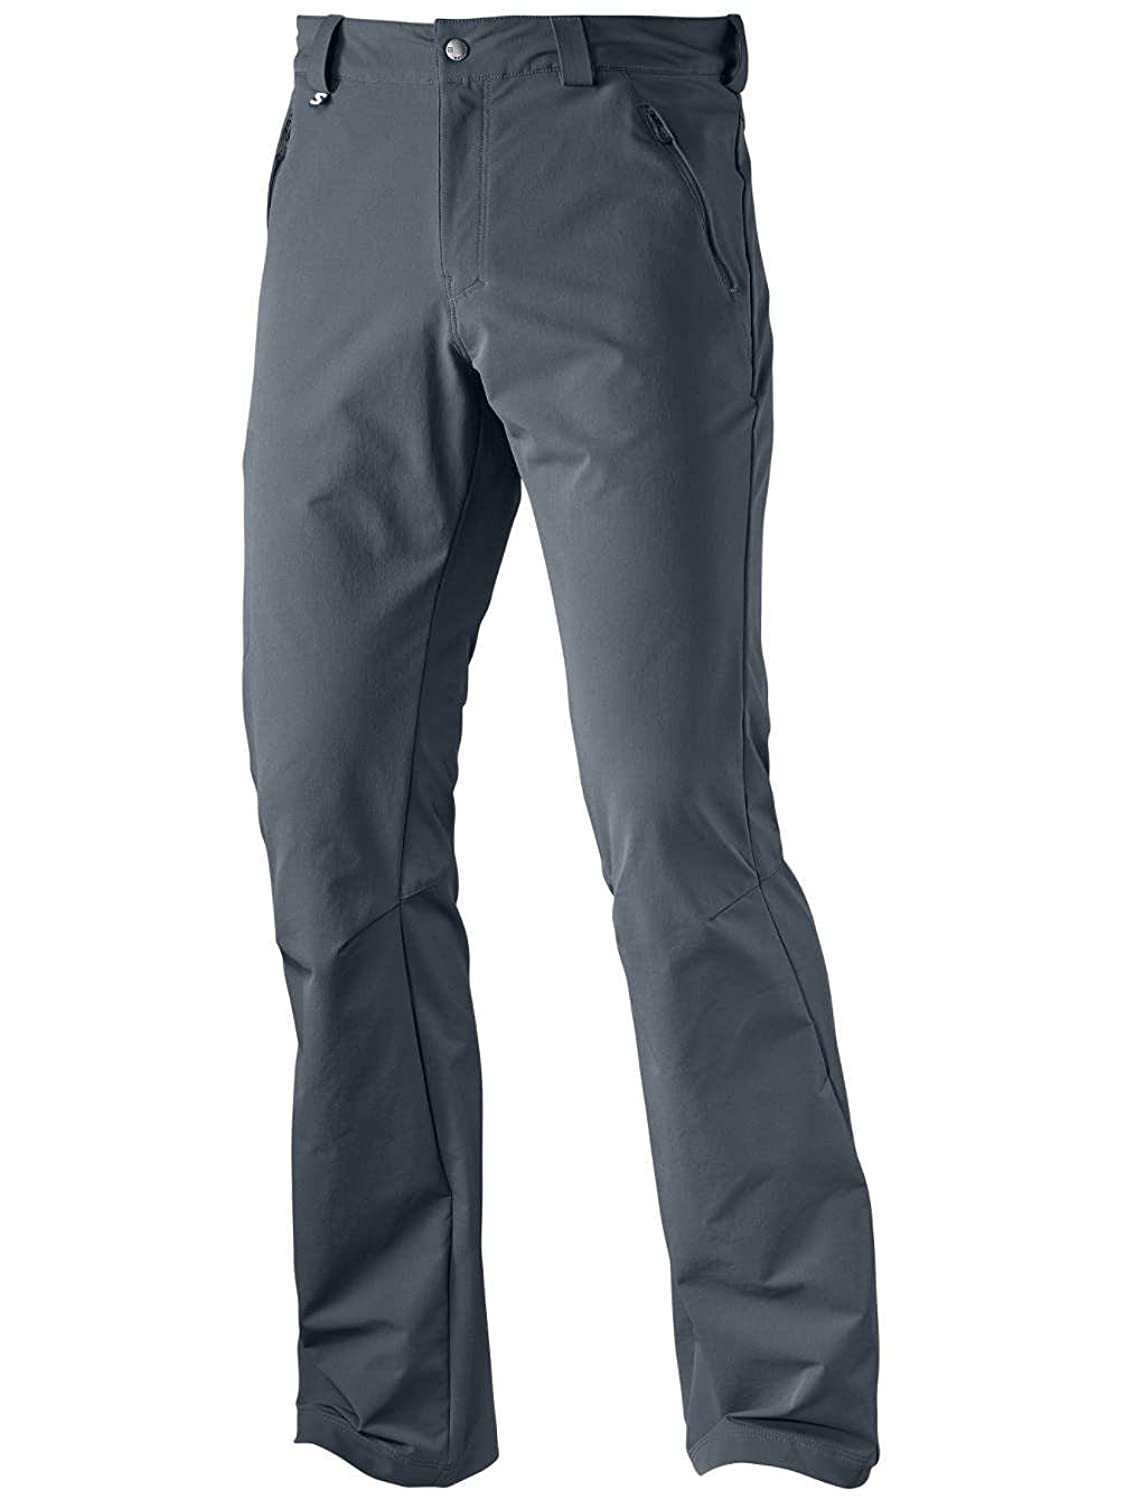 Outdoor Pant Men Salomon Wayfarer Winter Long Outdoor Pants